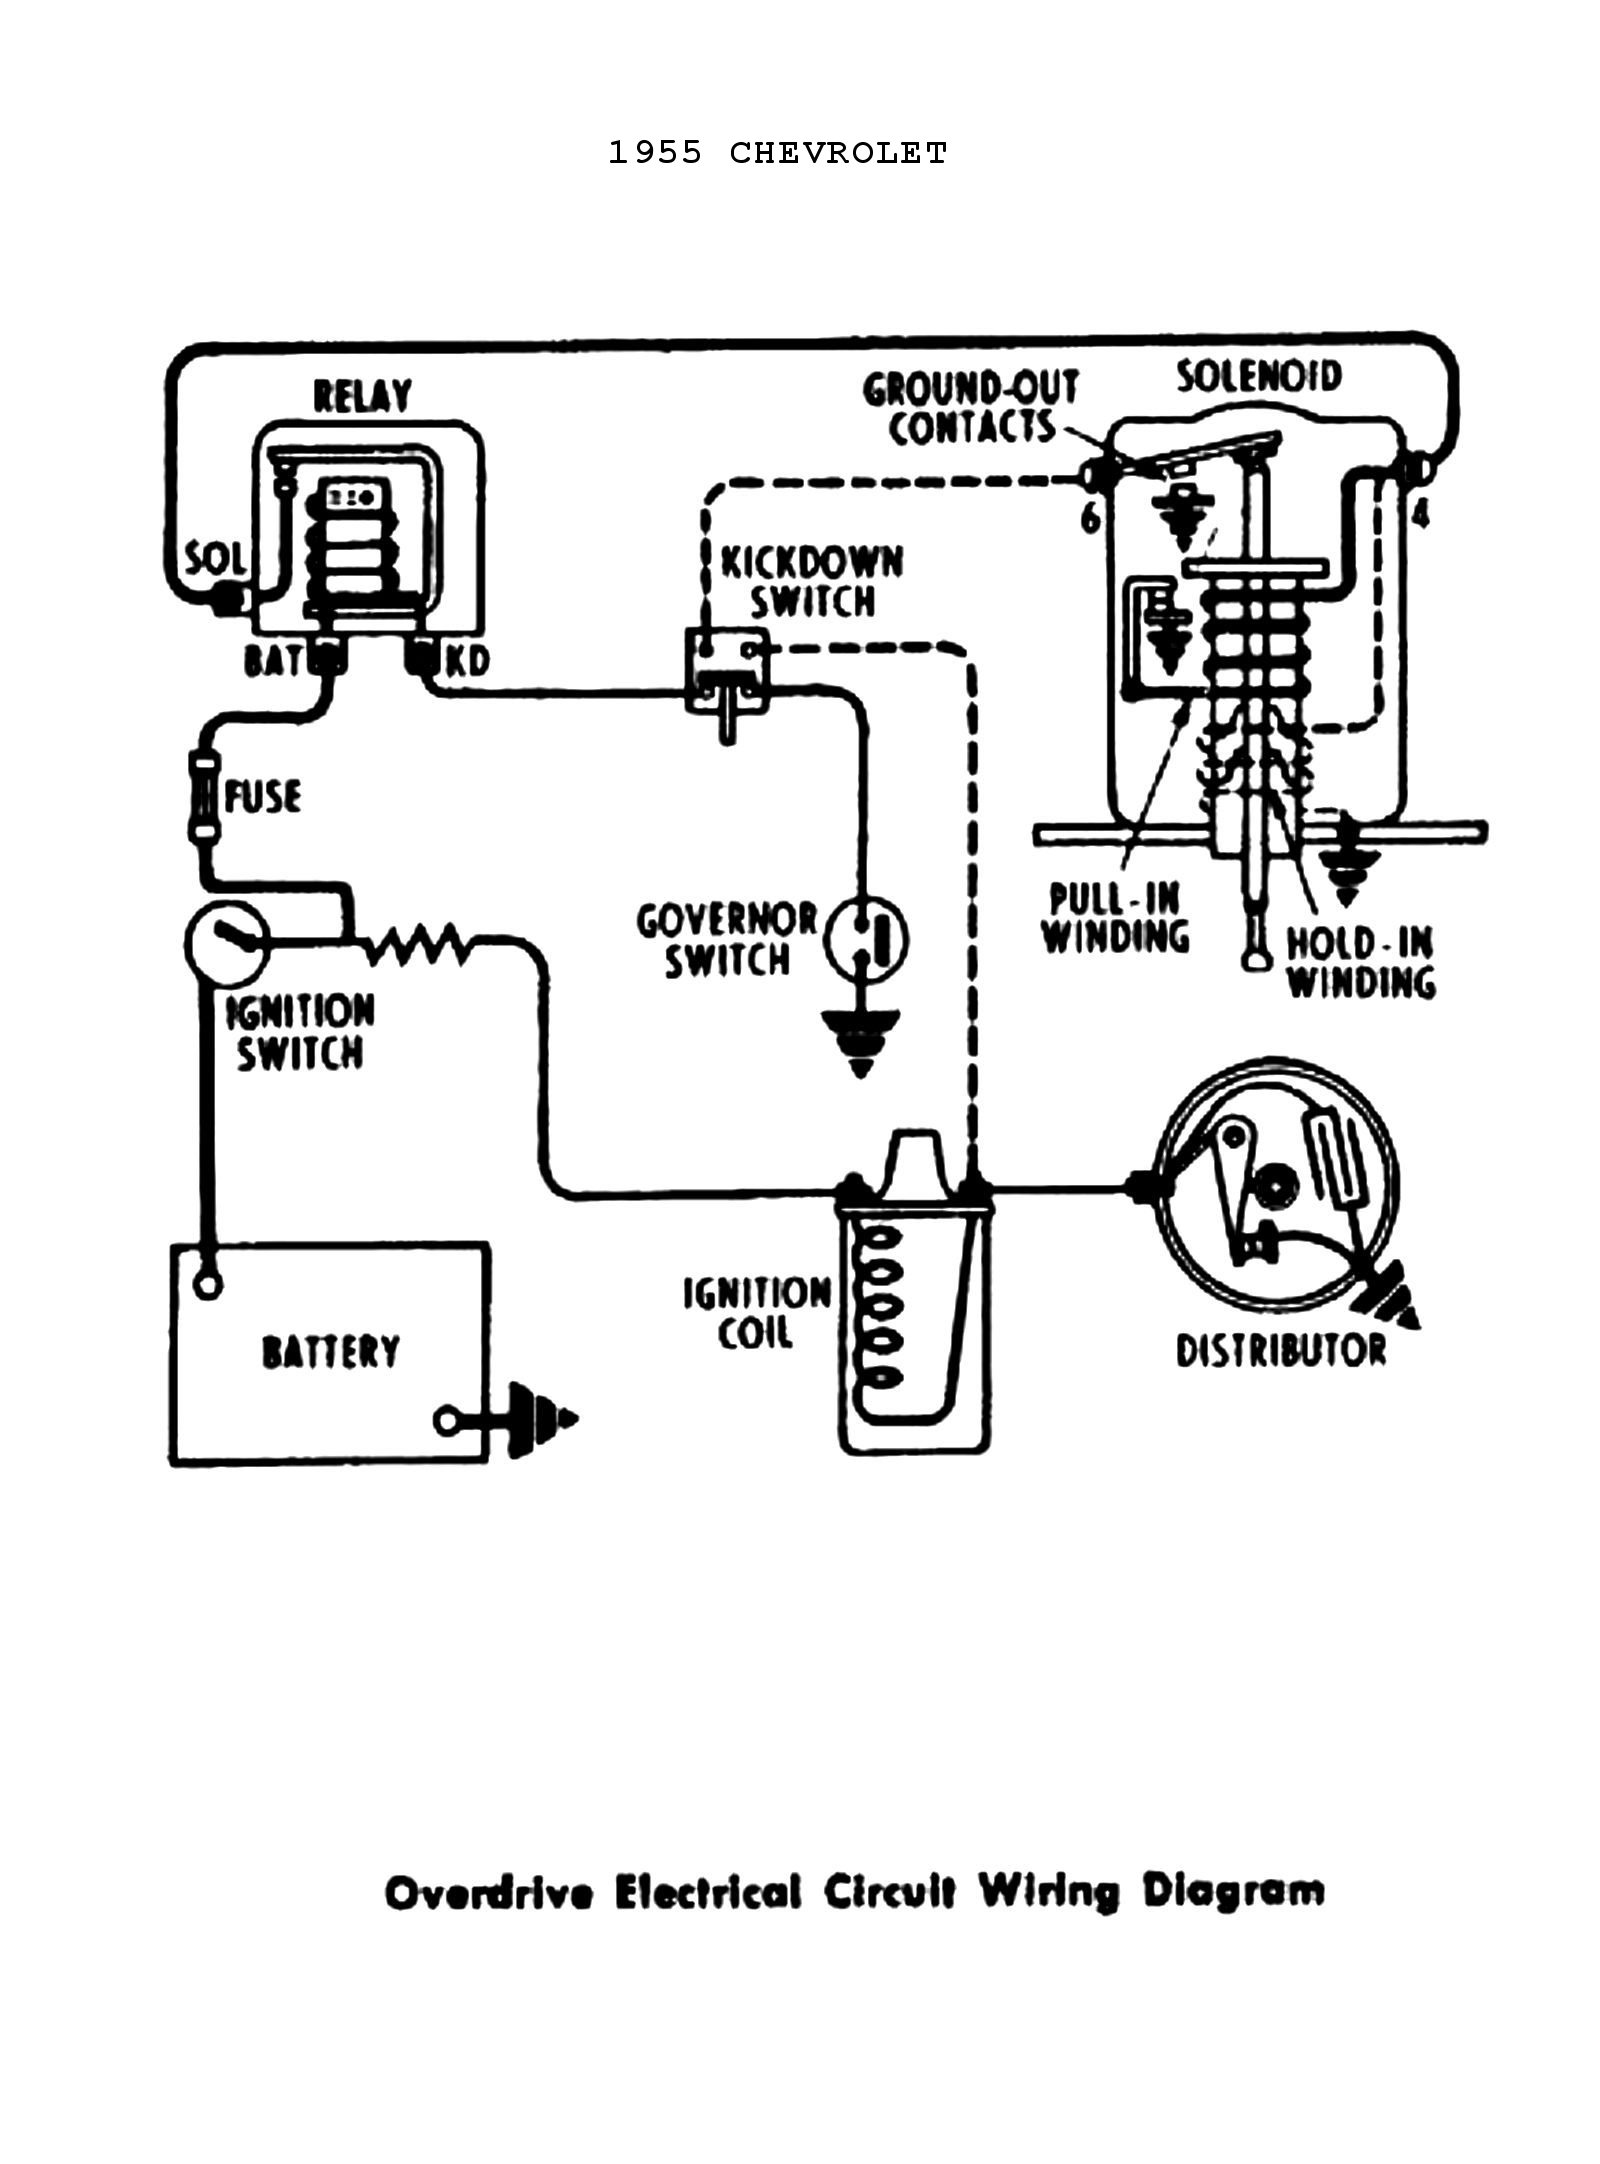 Ford 390 Distributor Wiring